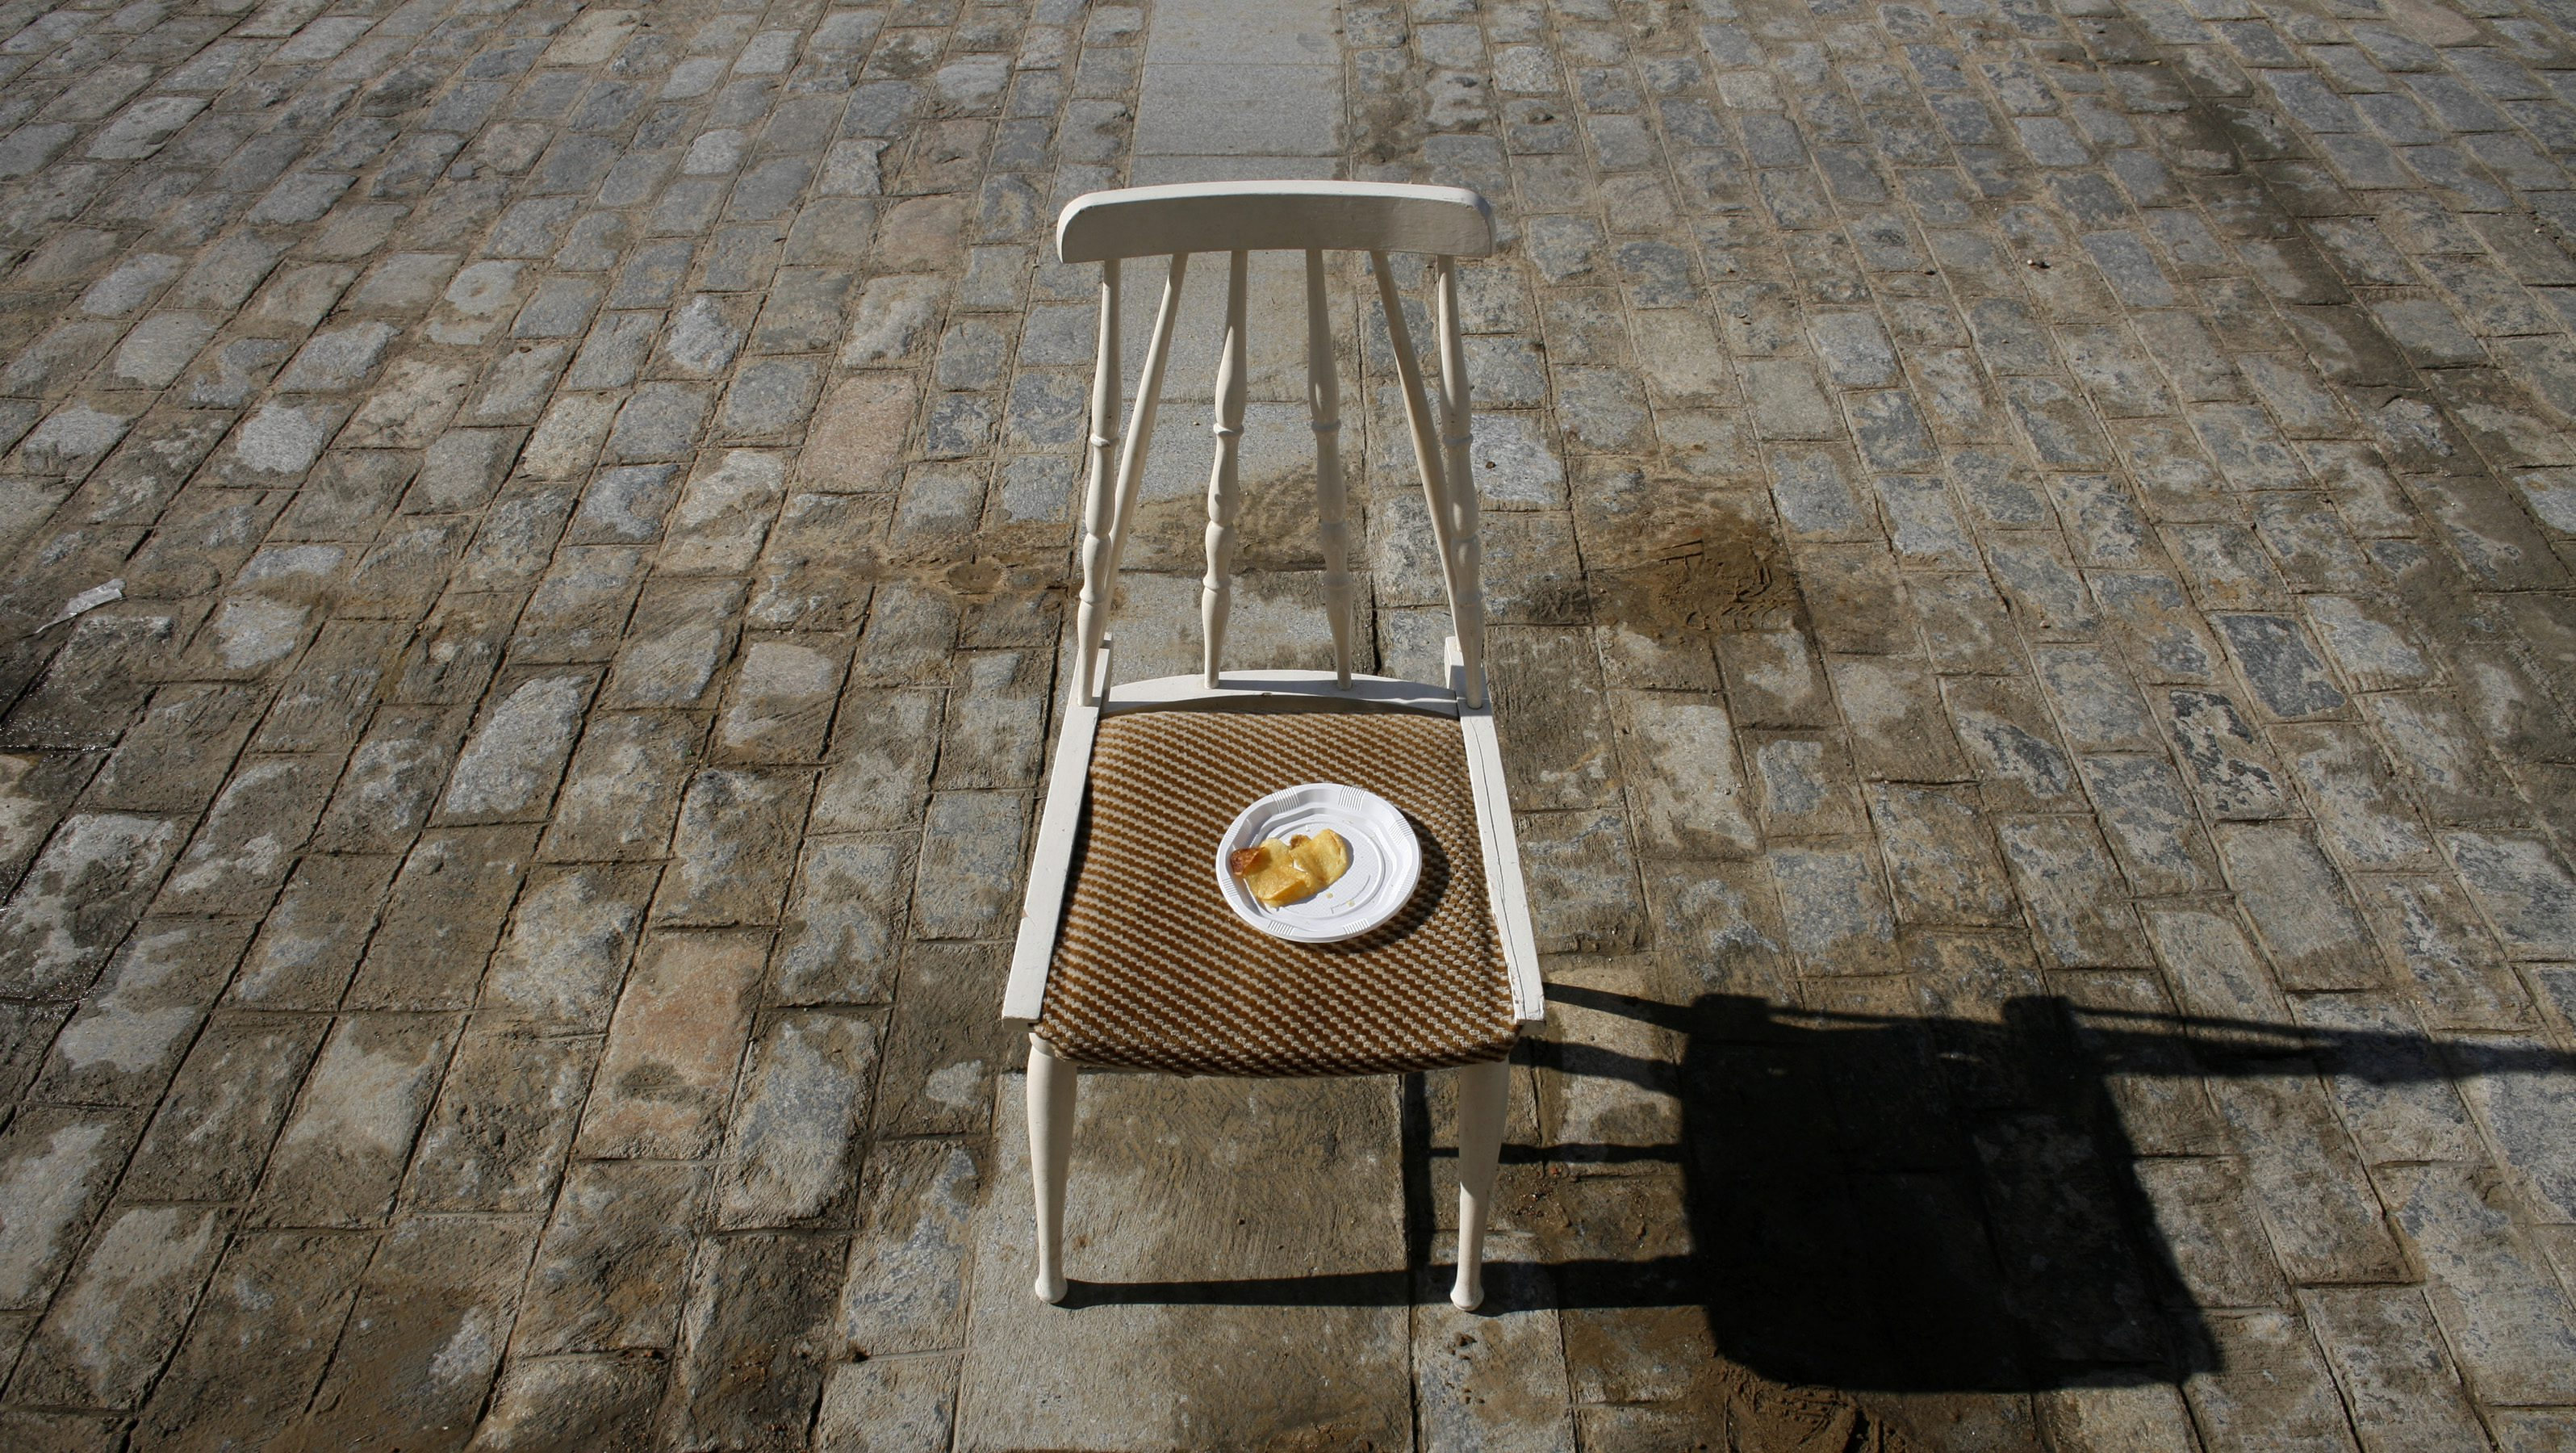 A plate of crisps is seen on a chair in a central street during a festival in Spain.